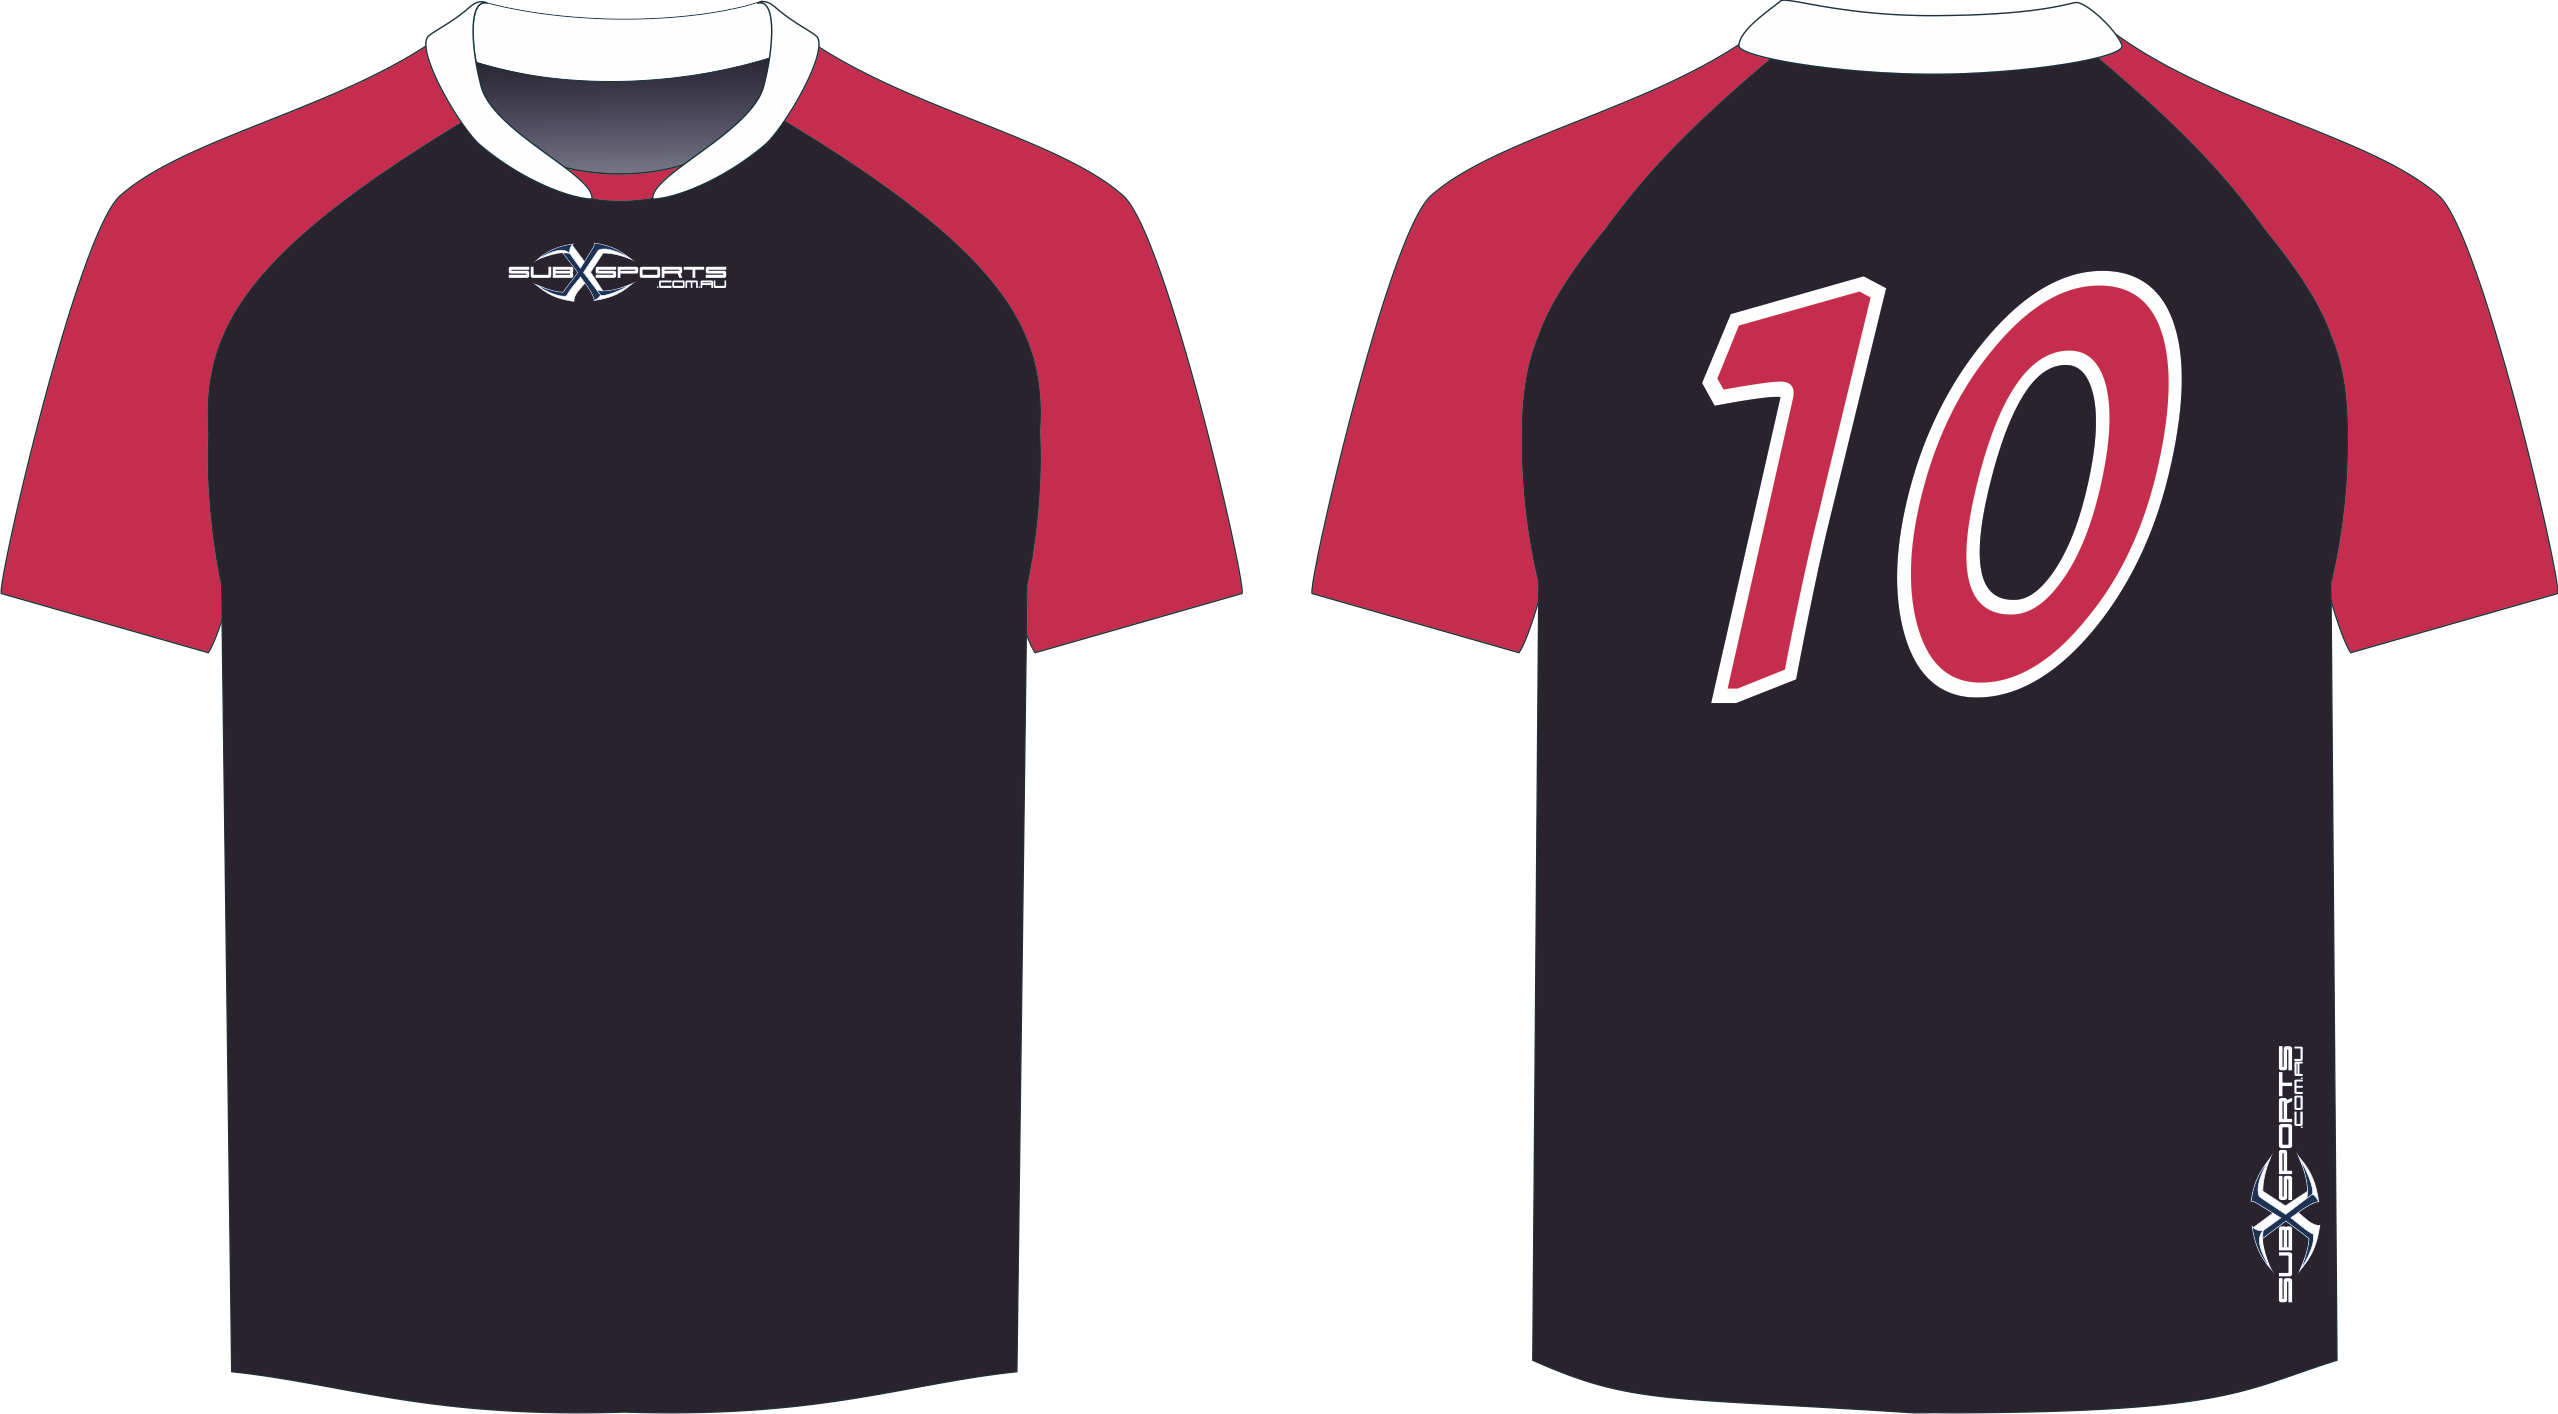 S206XJ Jersey Black Red.png